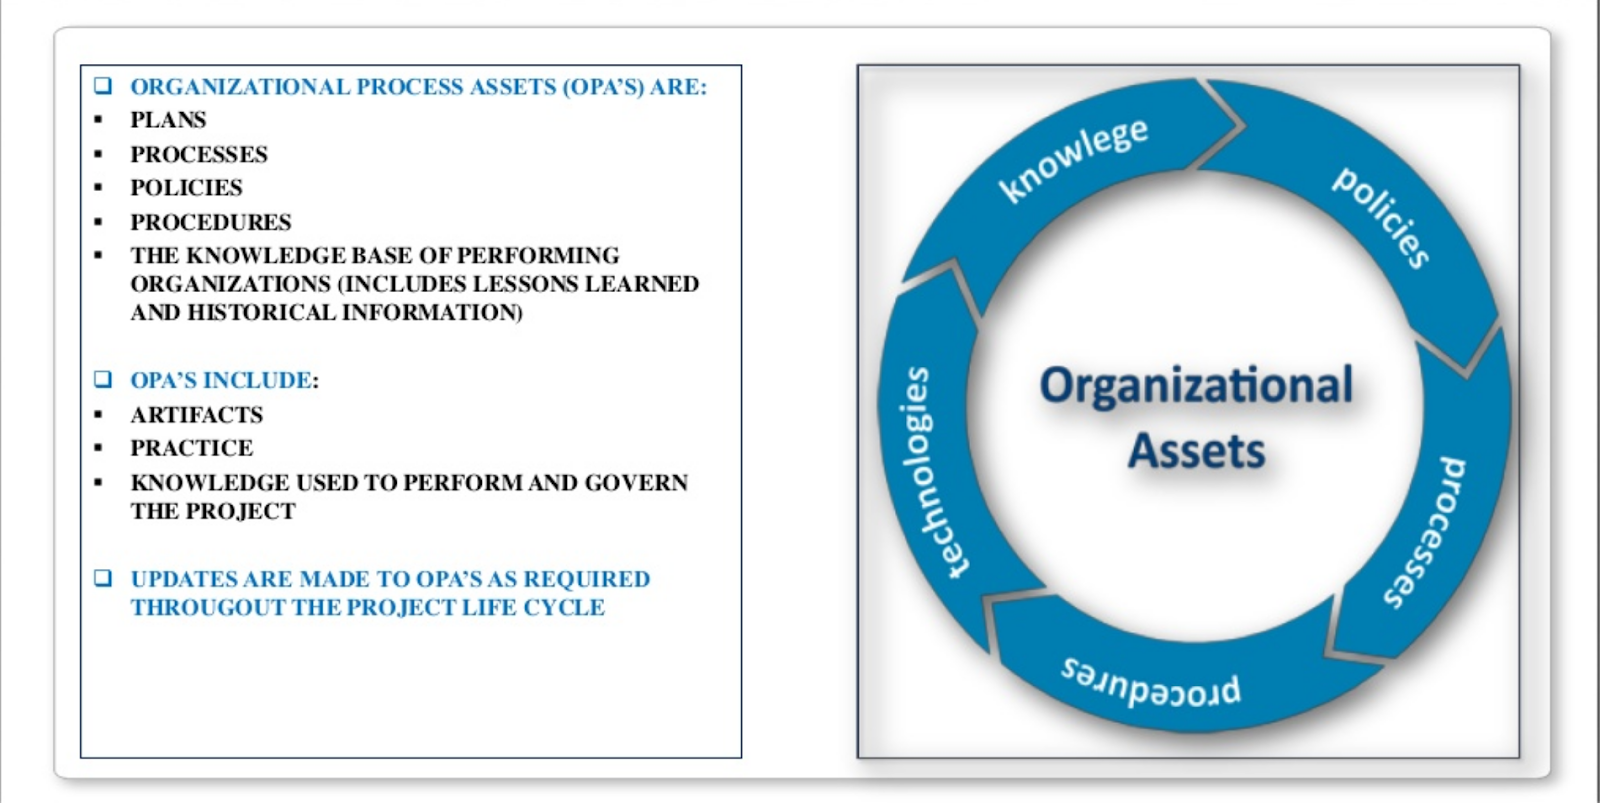 organizational change plan procedure Transformation planning and organizational change print definition: transformation planning is a process of developing a [strategic] plan for modifying an enterprise's business processes through the modification of policies, procedures, and processes to move the organization from an as is state to a to be state.